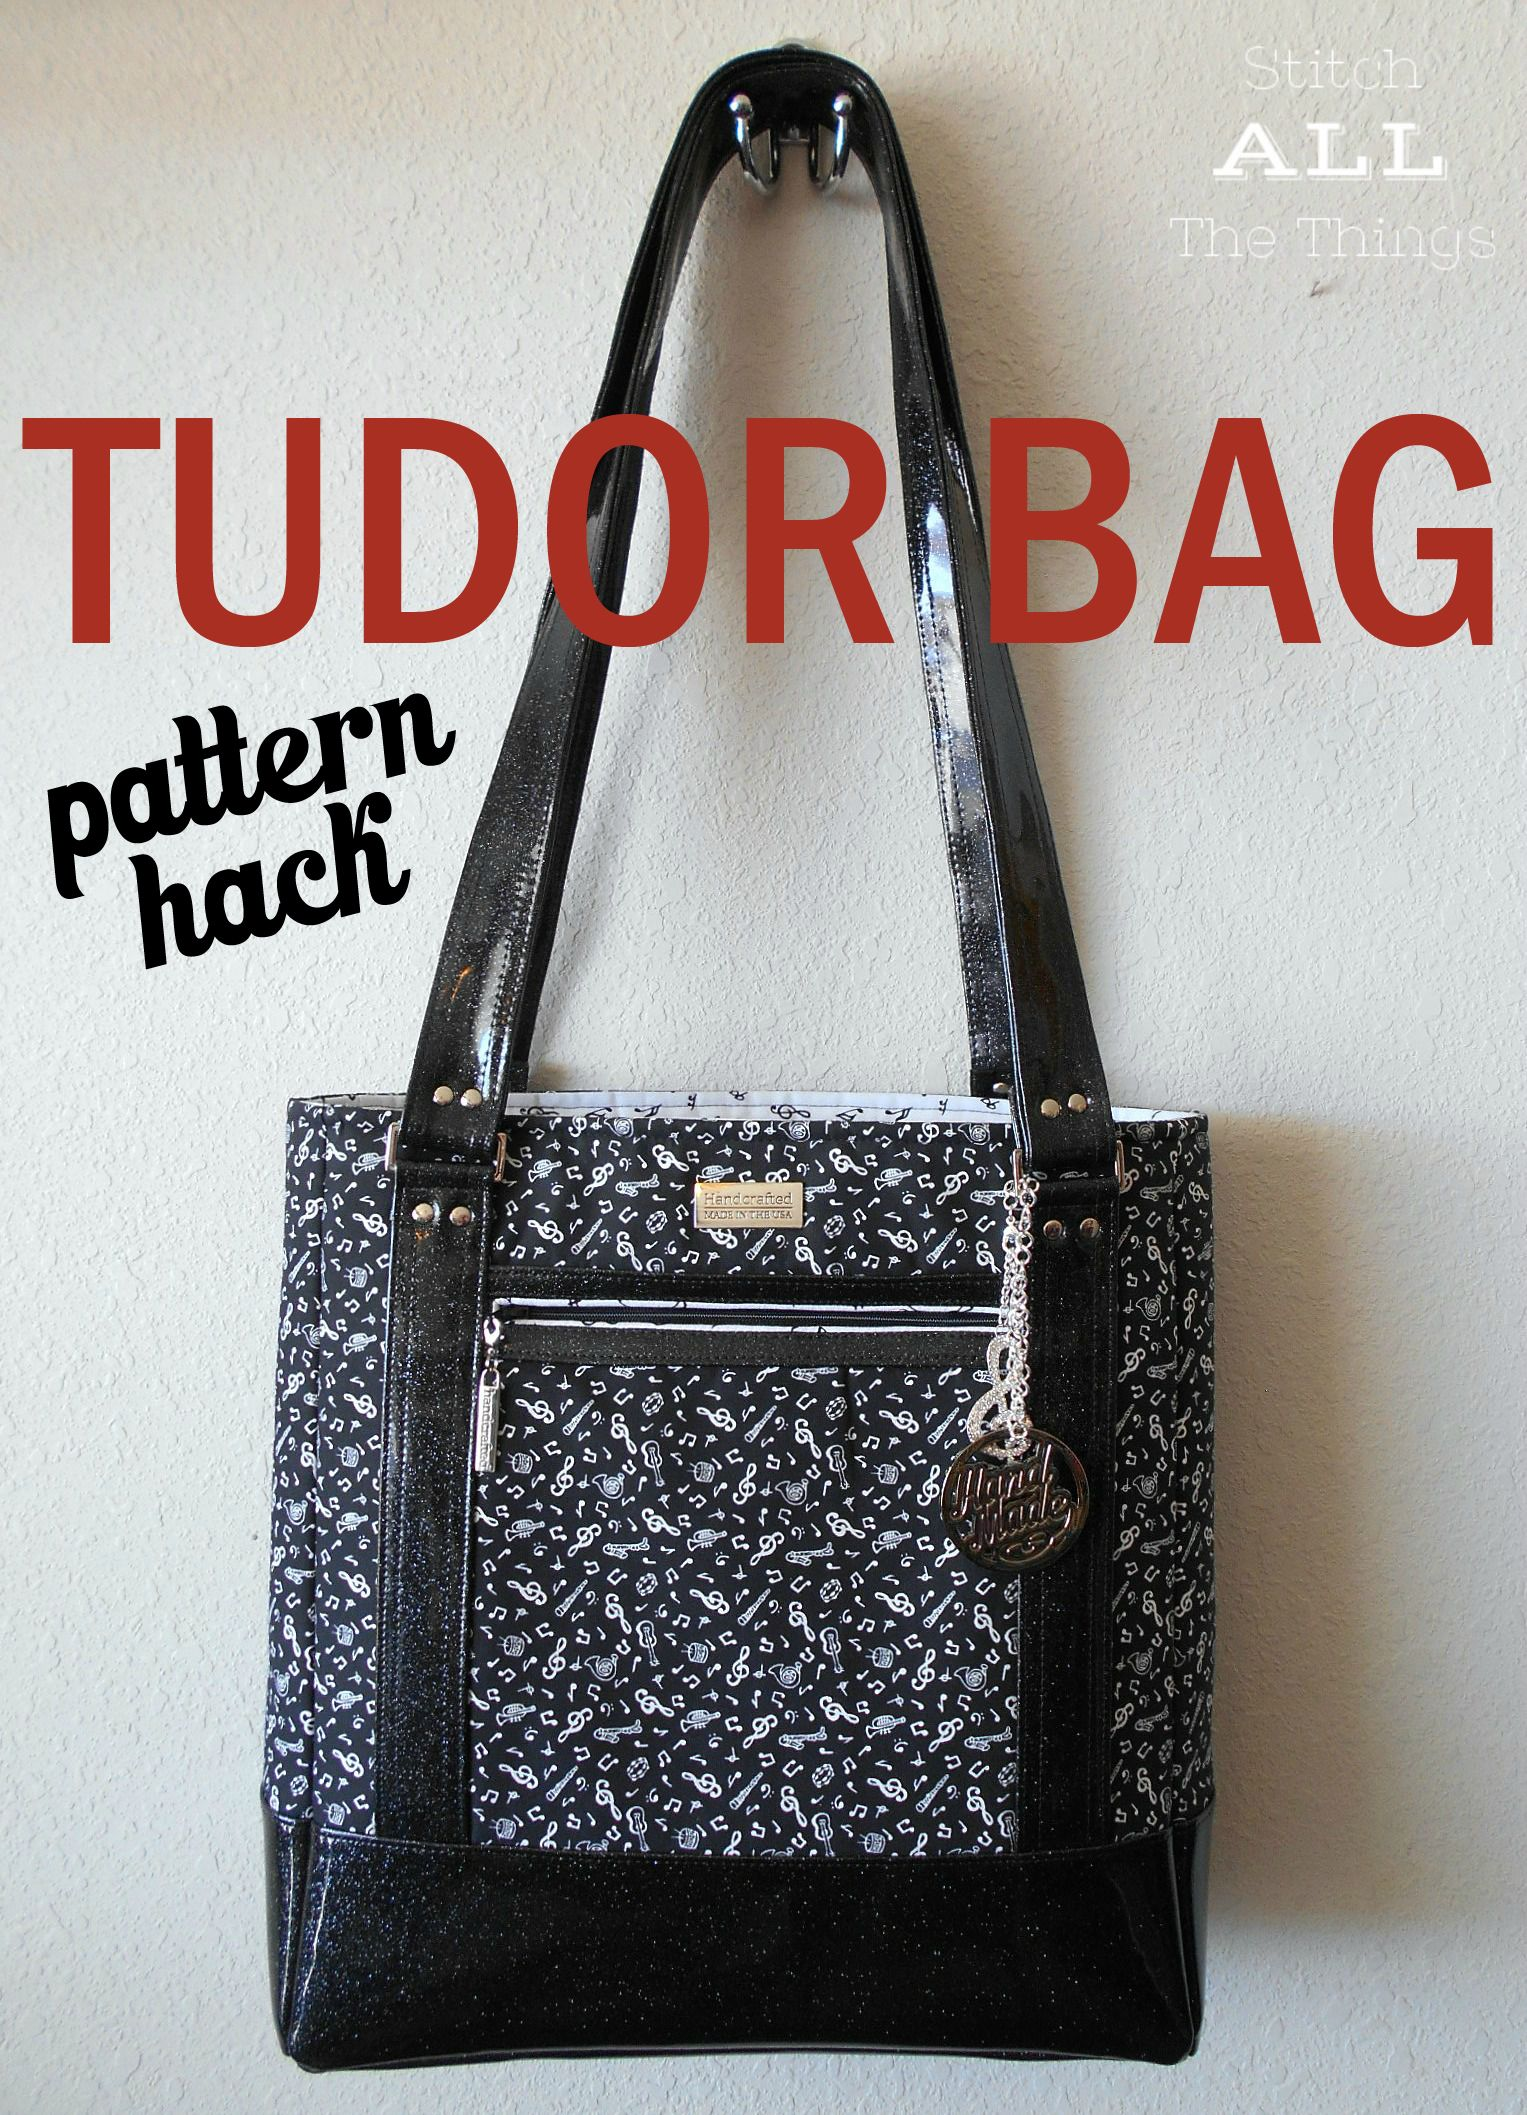 Pattern hack for the sew sweetness tudor bag sewing pattern pattern hack for the sew sweetness tudor bag sewing pattern jeuxipadfo Gallery